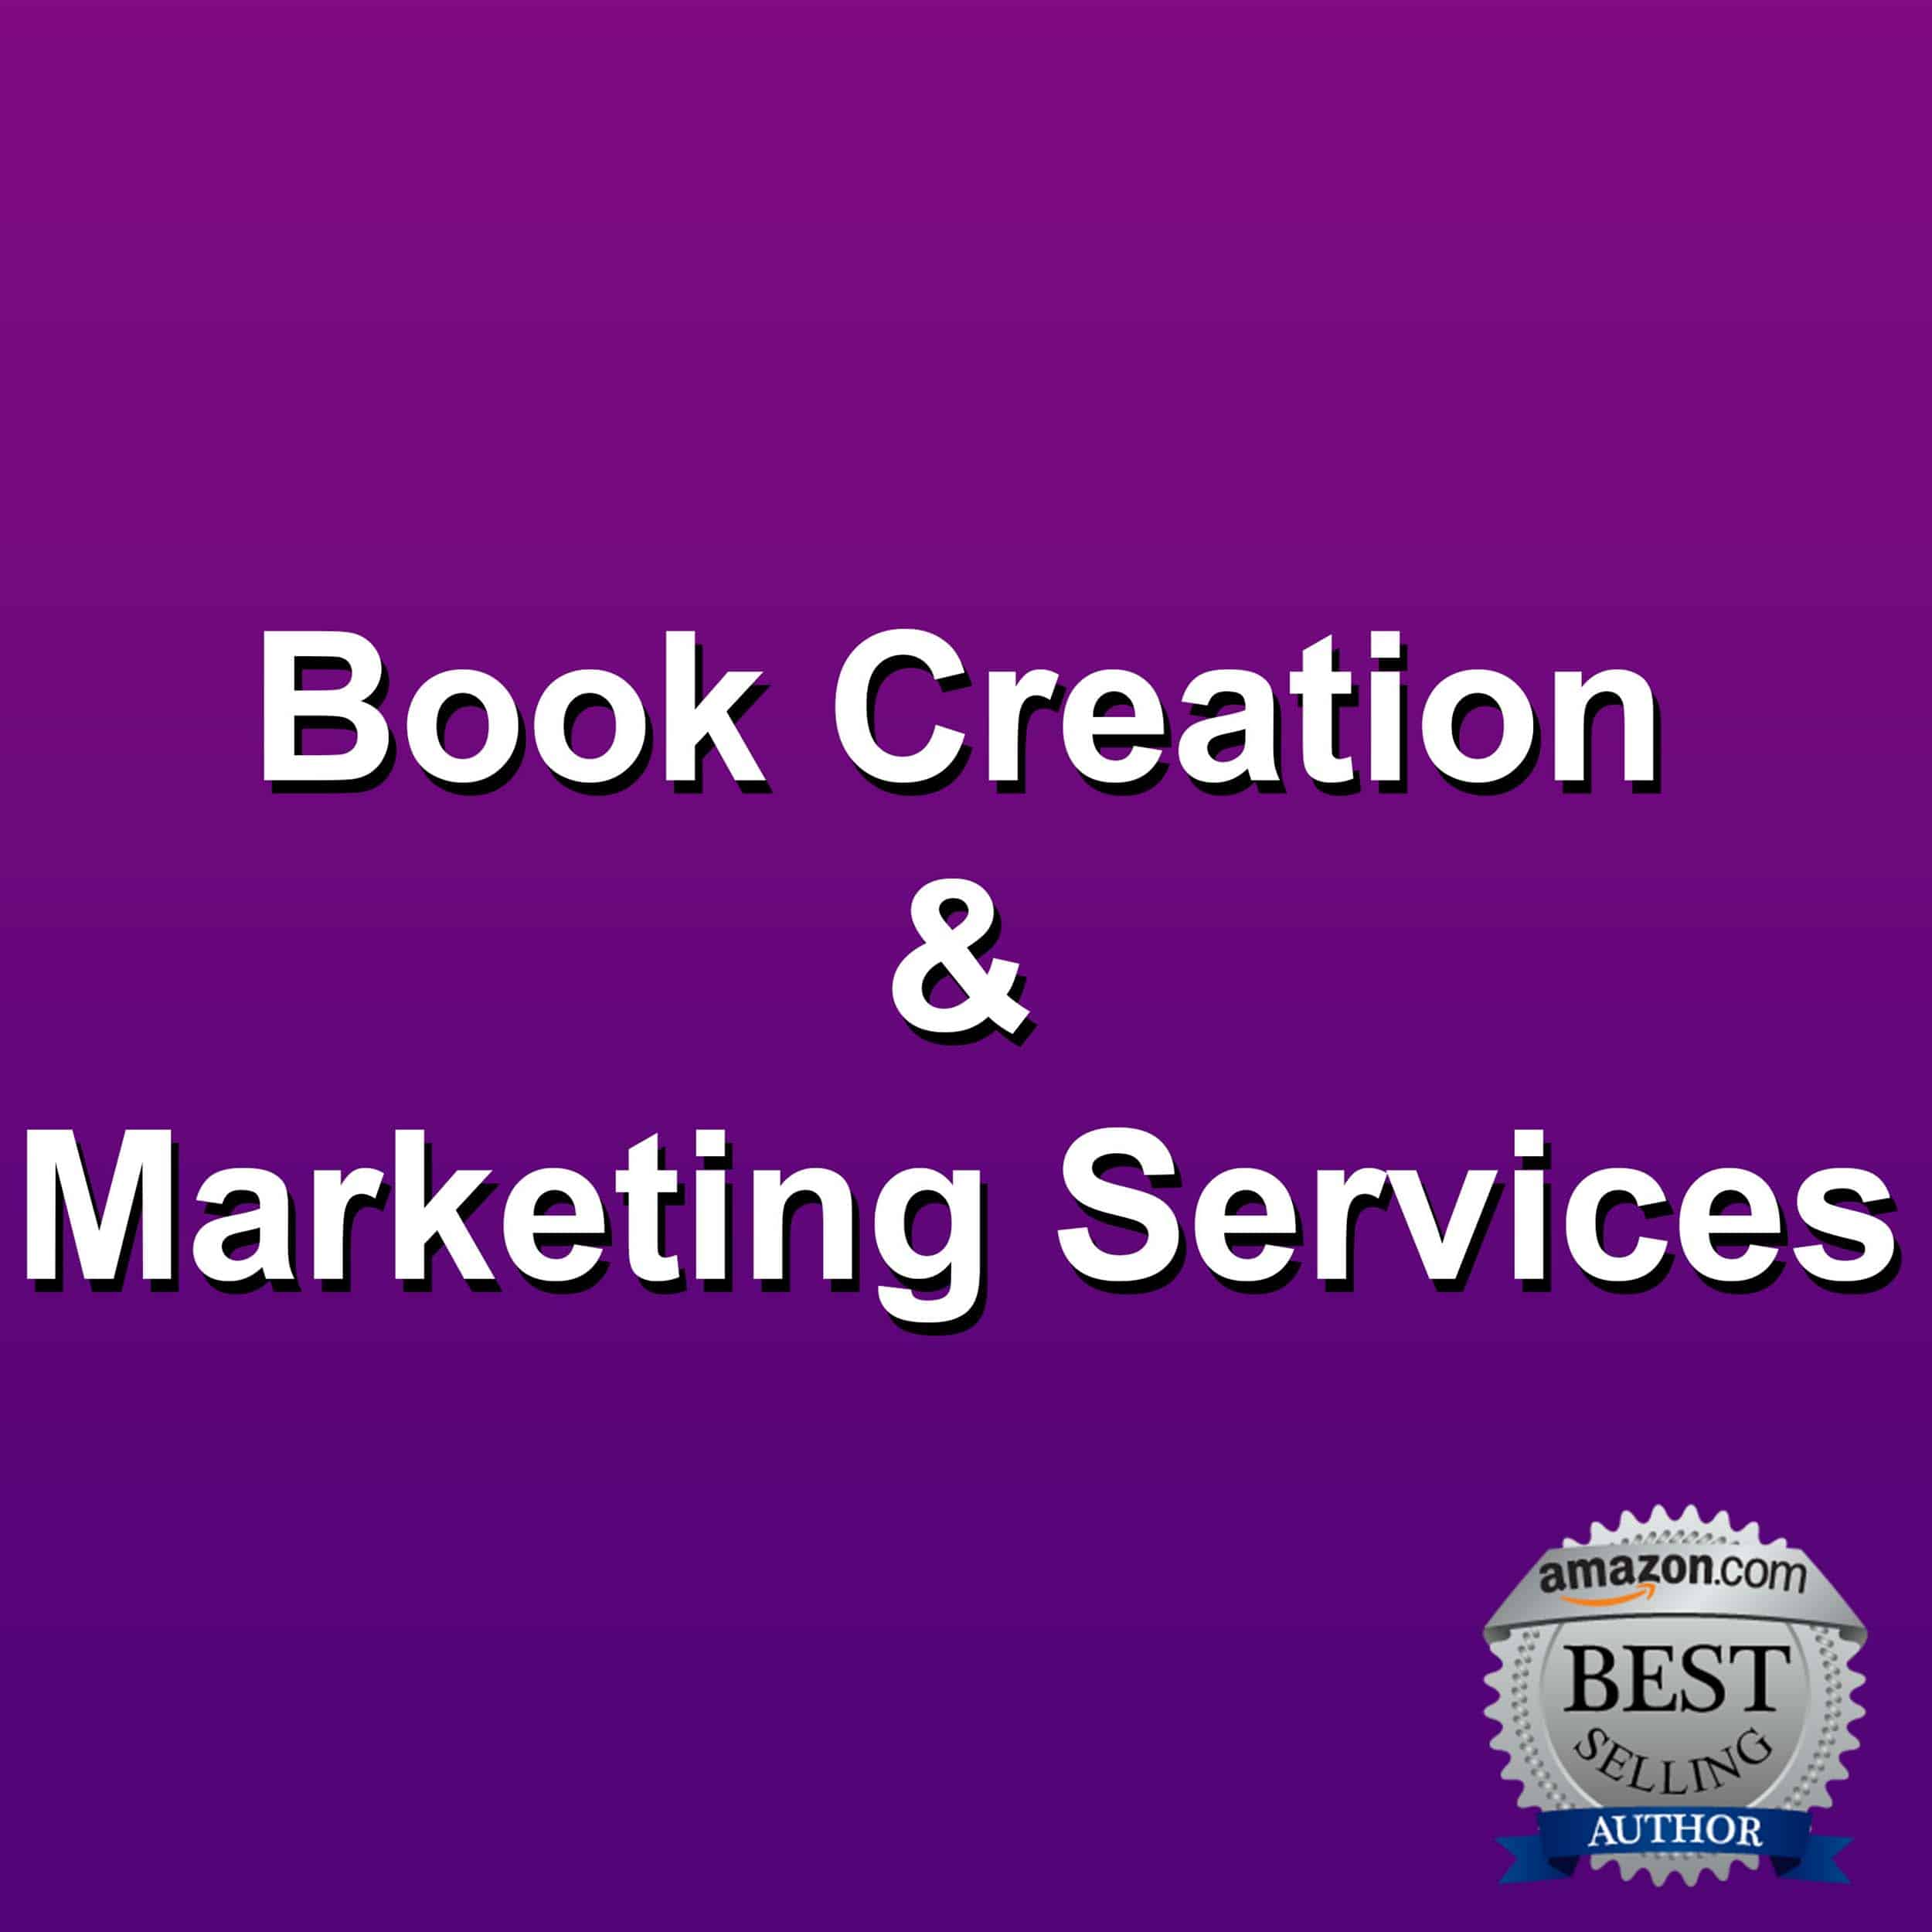 Book Creation & Marketing Services